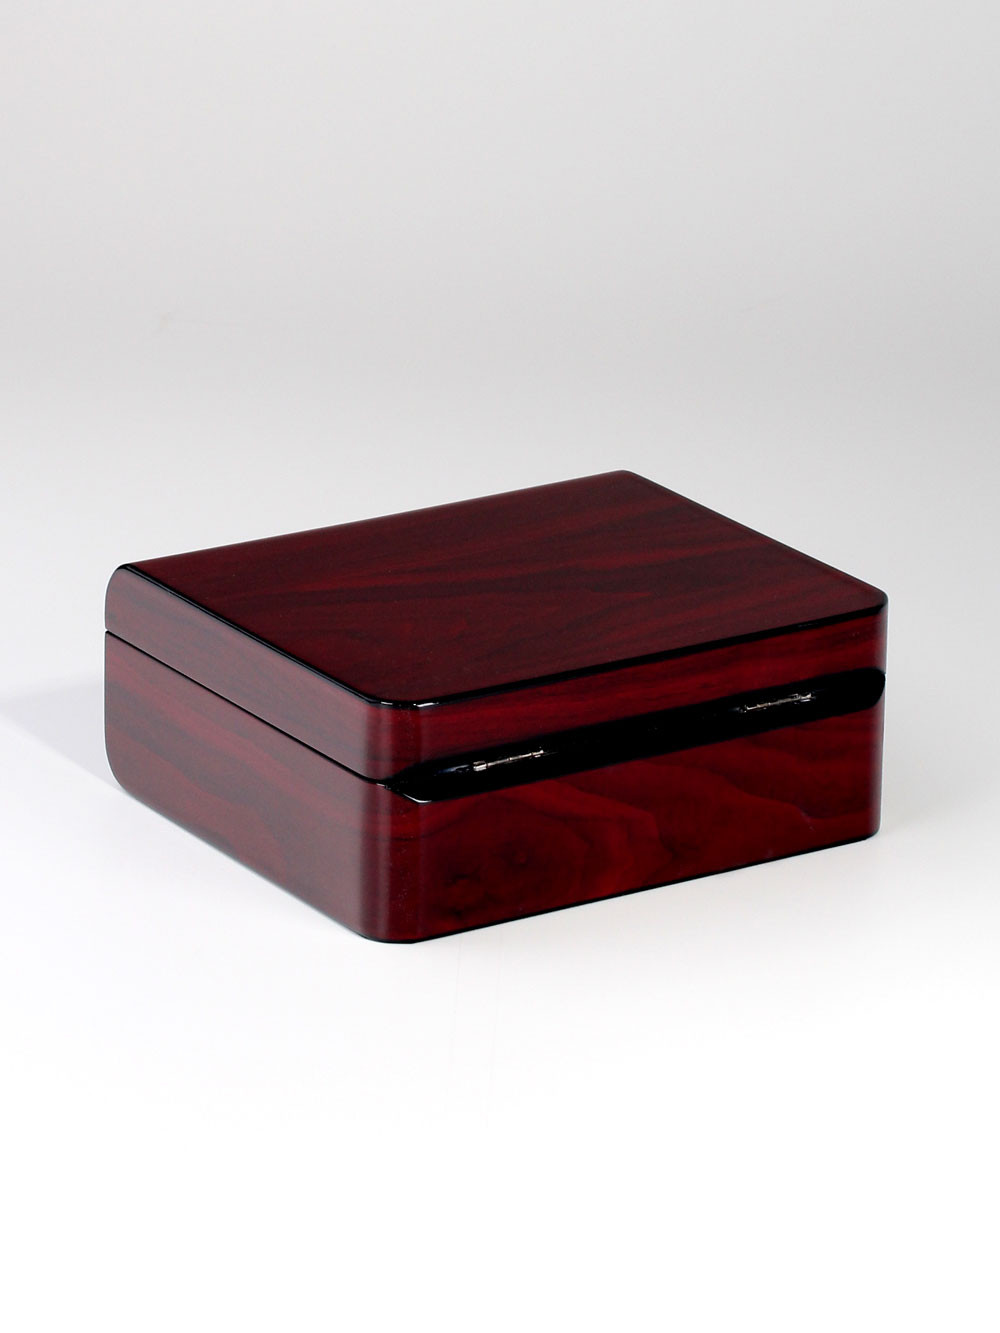 Rothenschild Watch Box RS-2267-6-C for 6 Watches Cherry